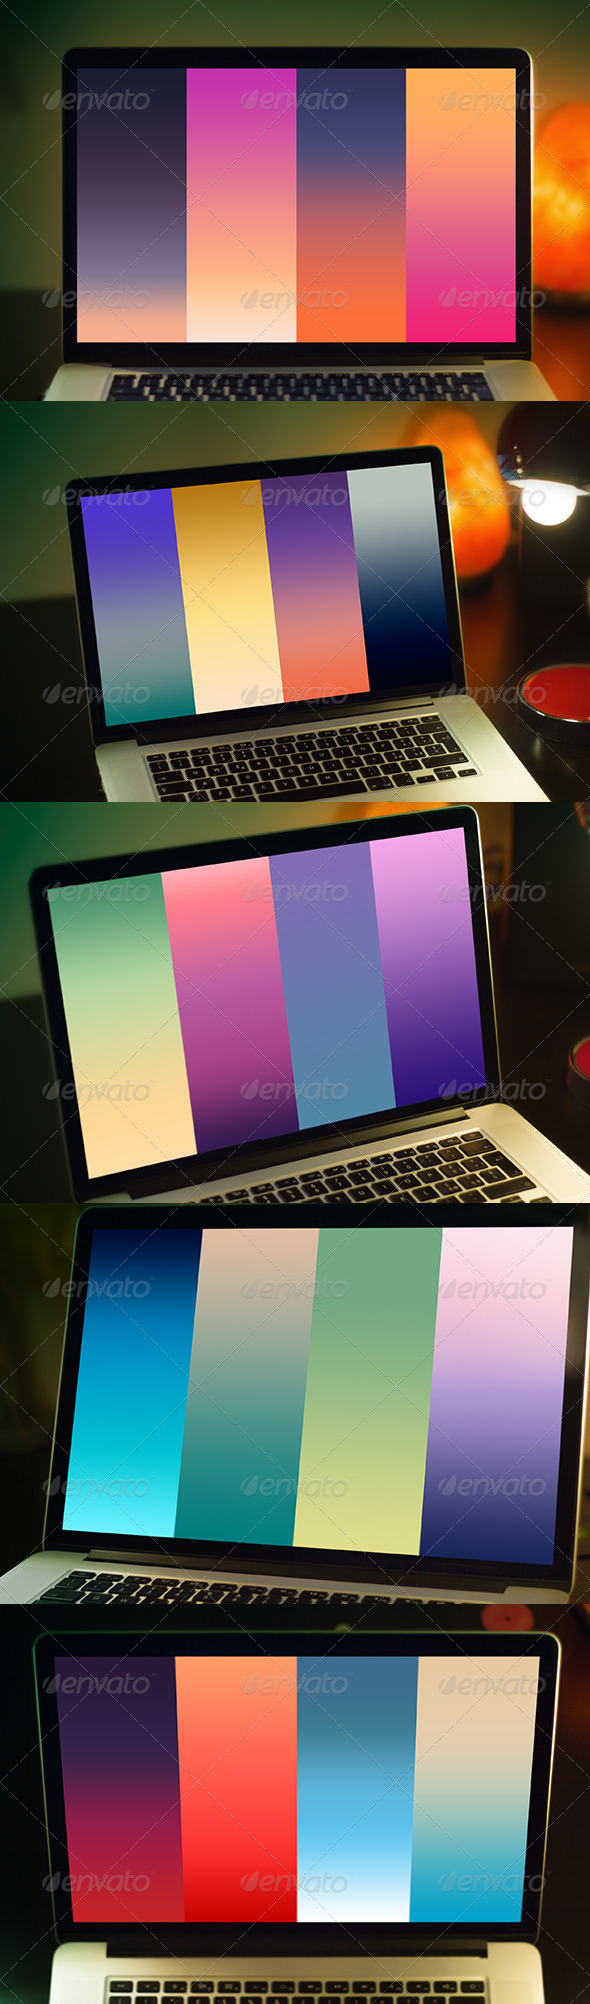 GraphicRiver Natural Gradients Vol 01 Sunset and Sunrises 8531615